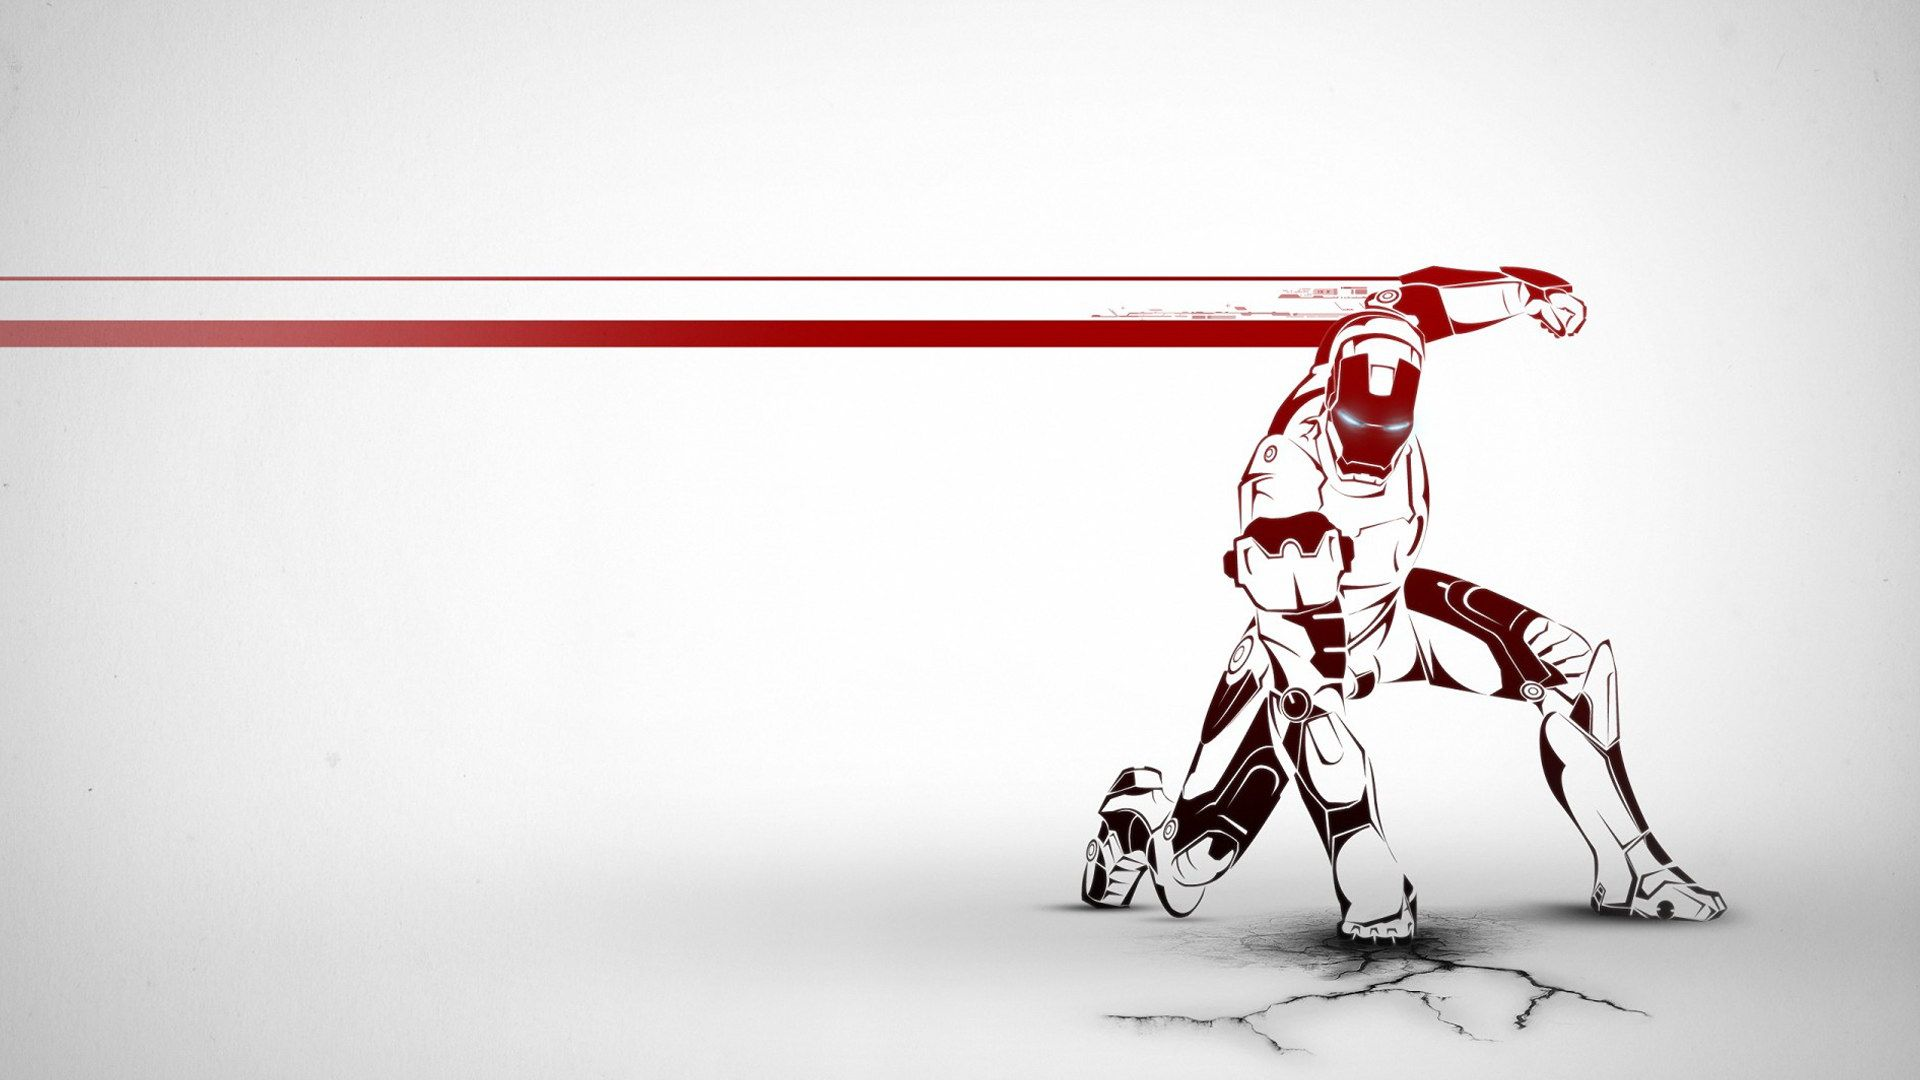 Iron Man HD desktop wallpaper : Widescreen : High Definition 1920x1080